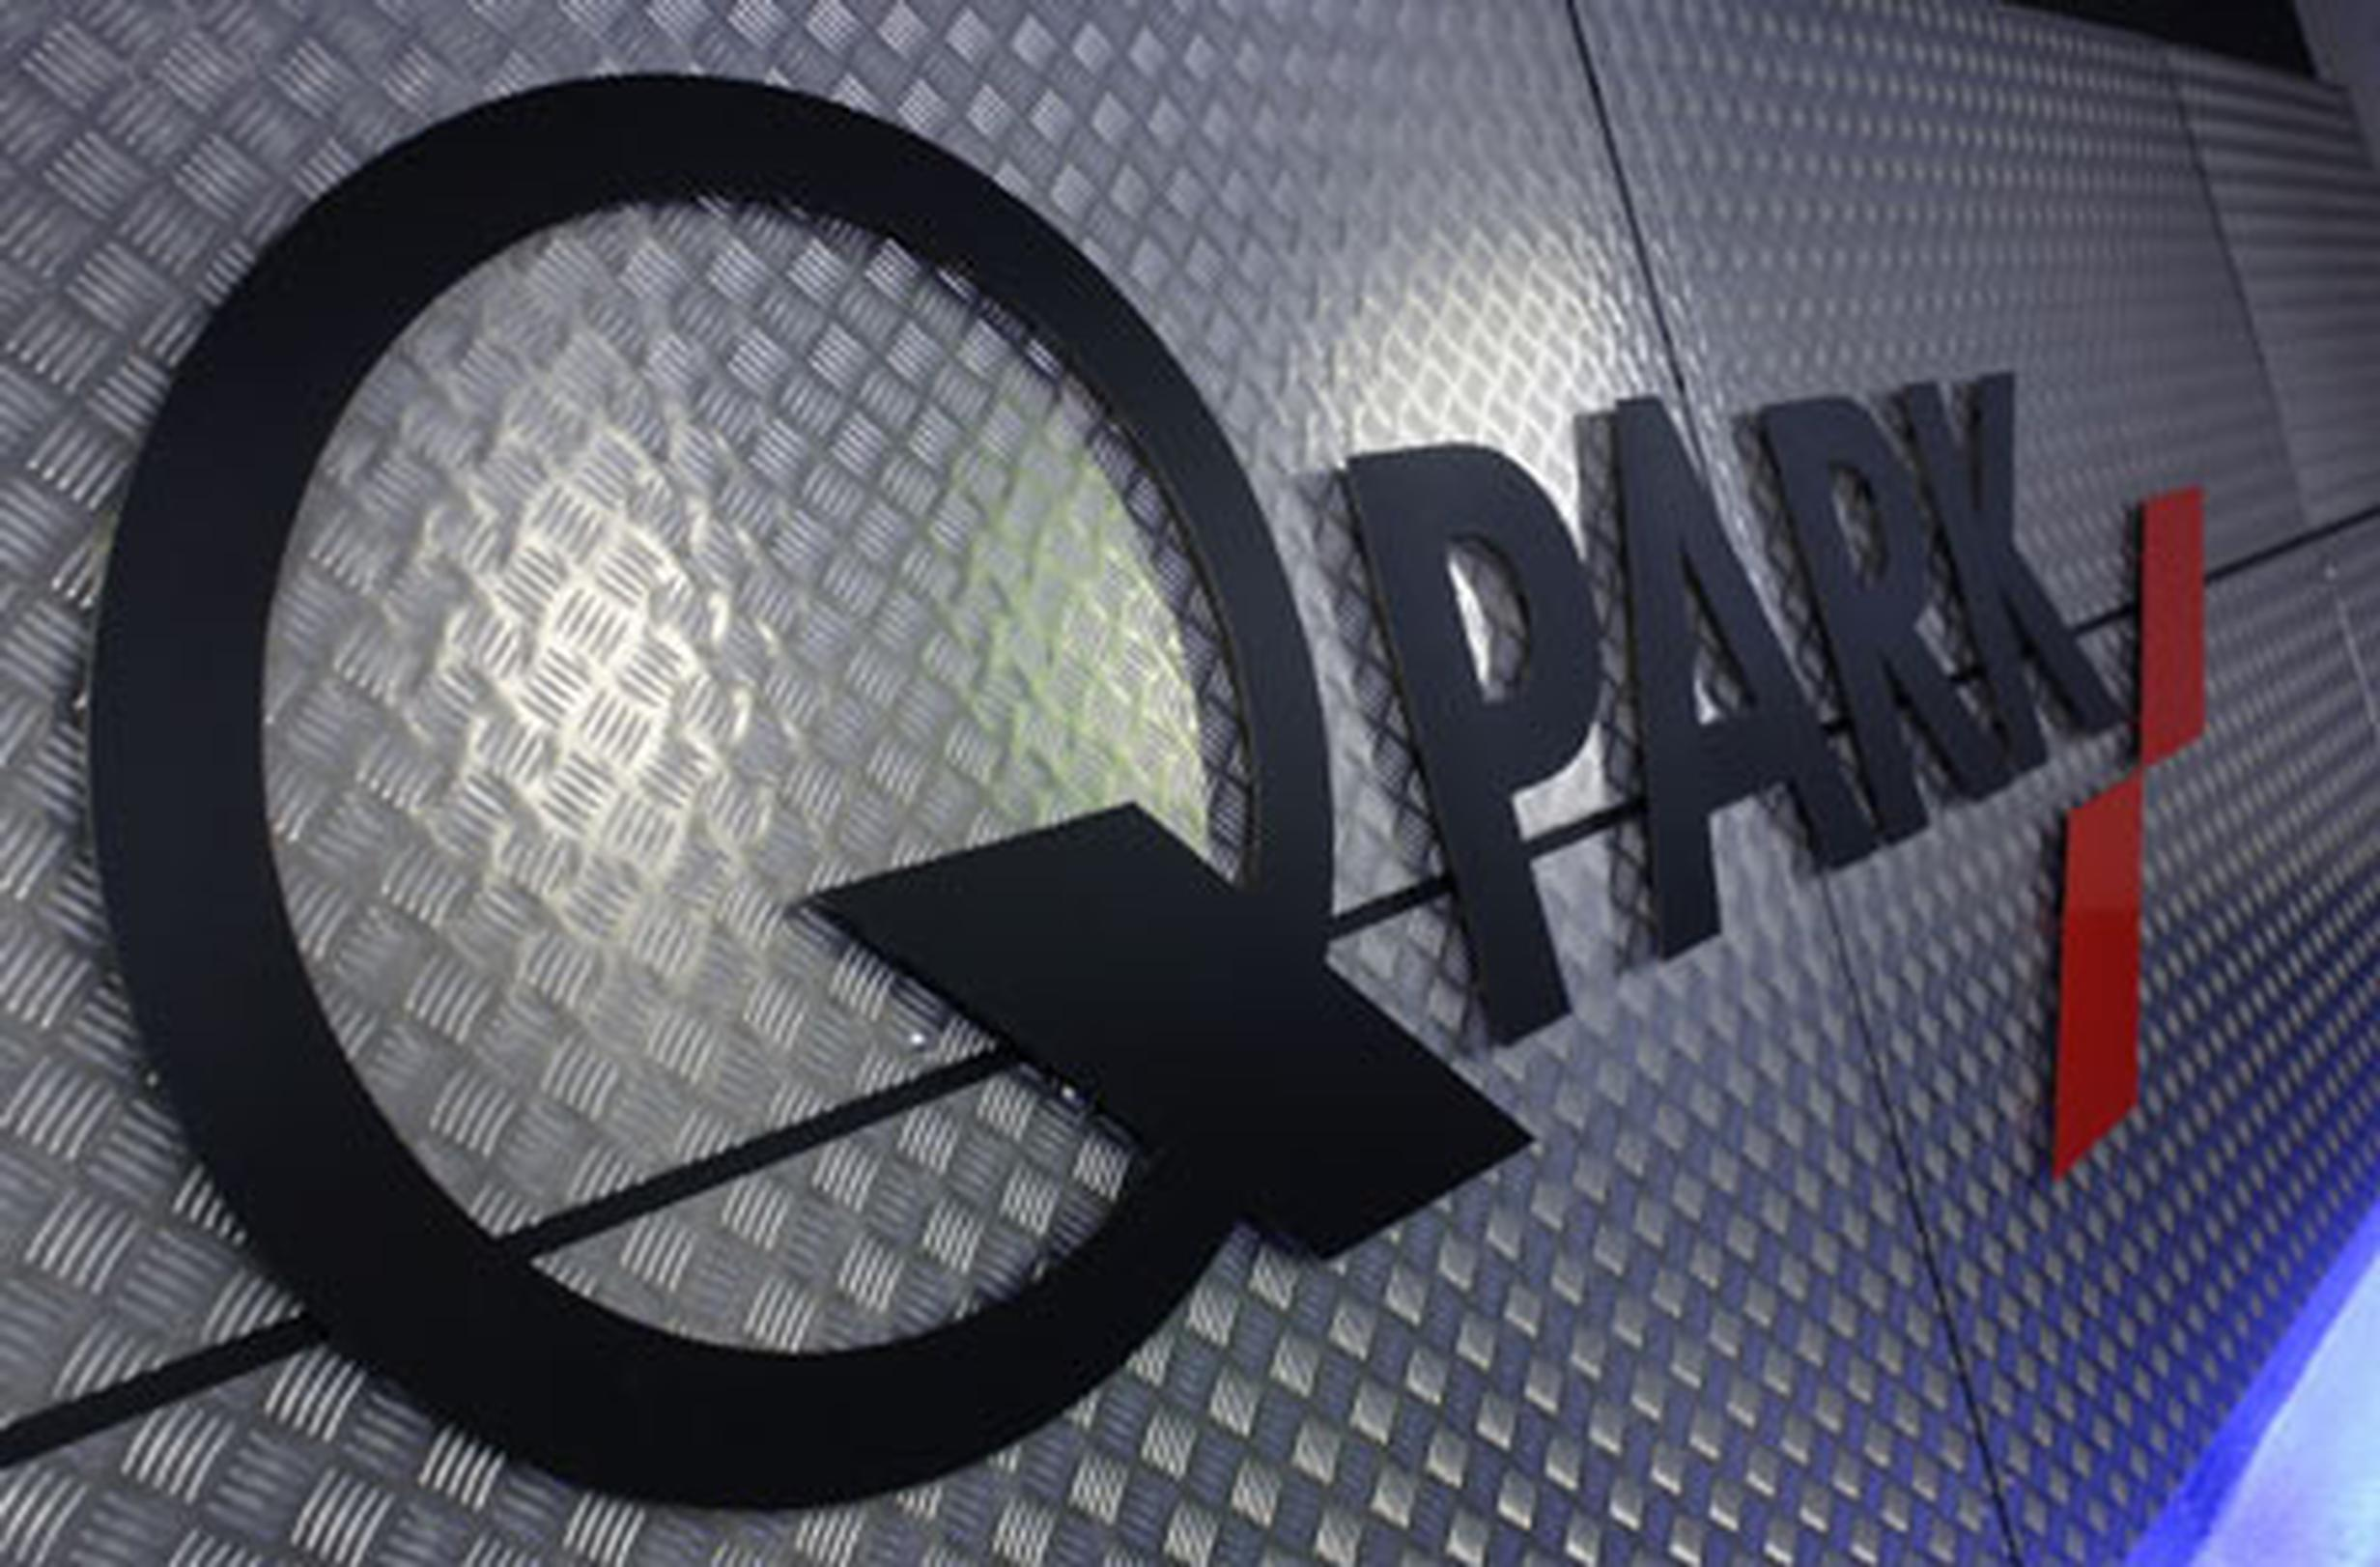 Q-Park operates car parks across Europe